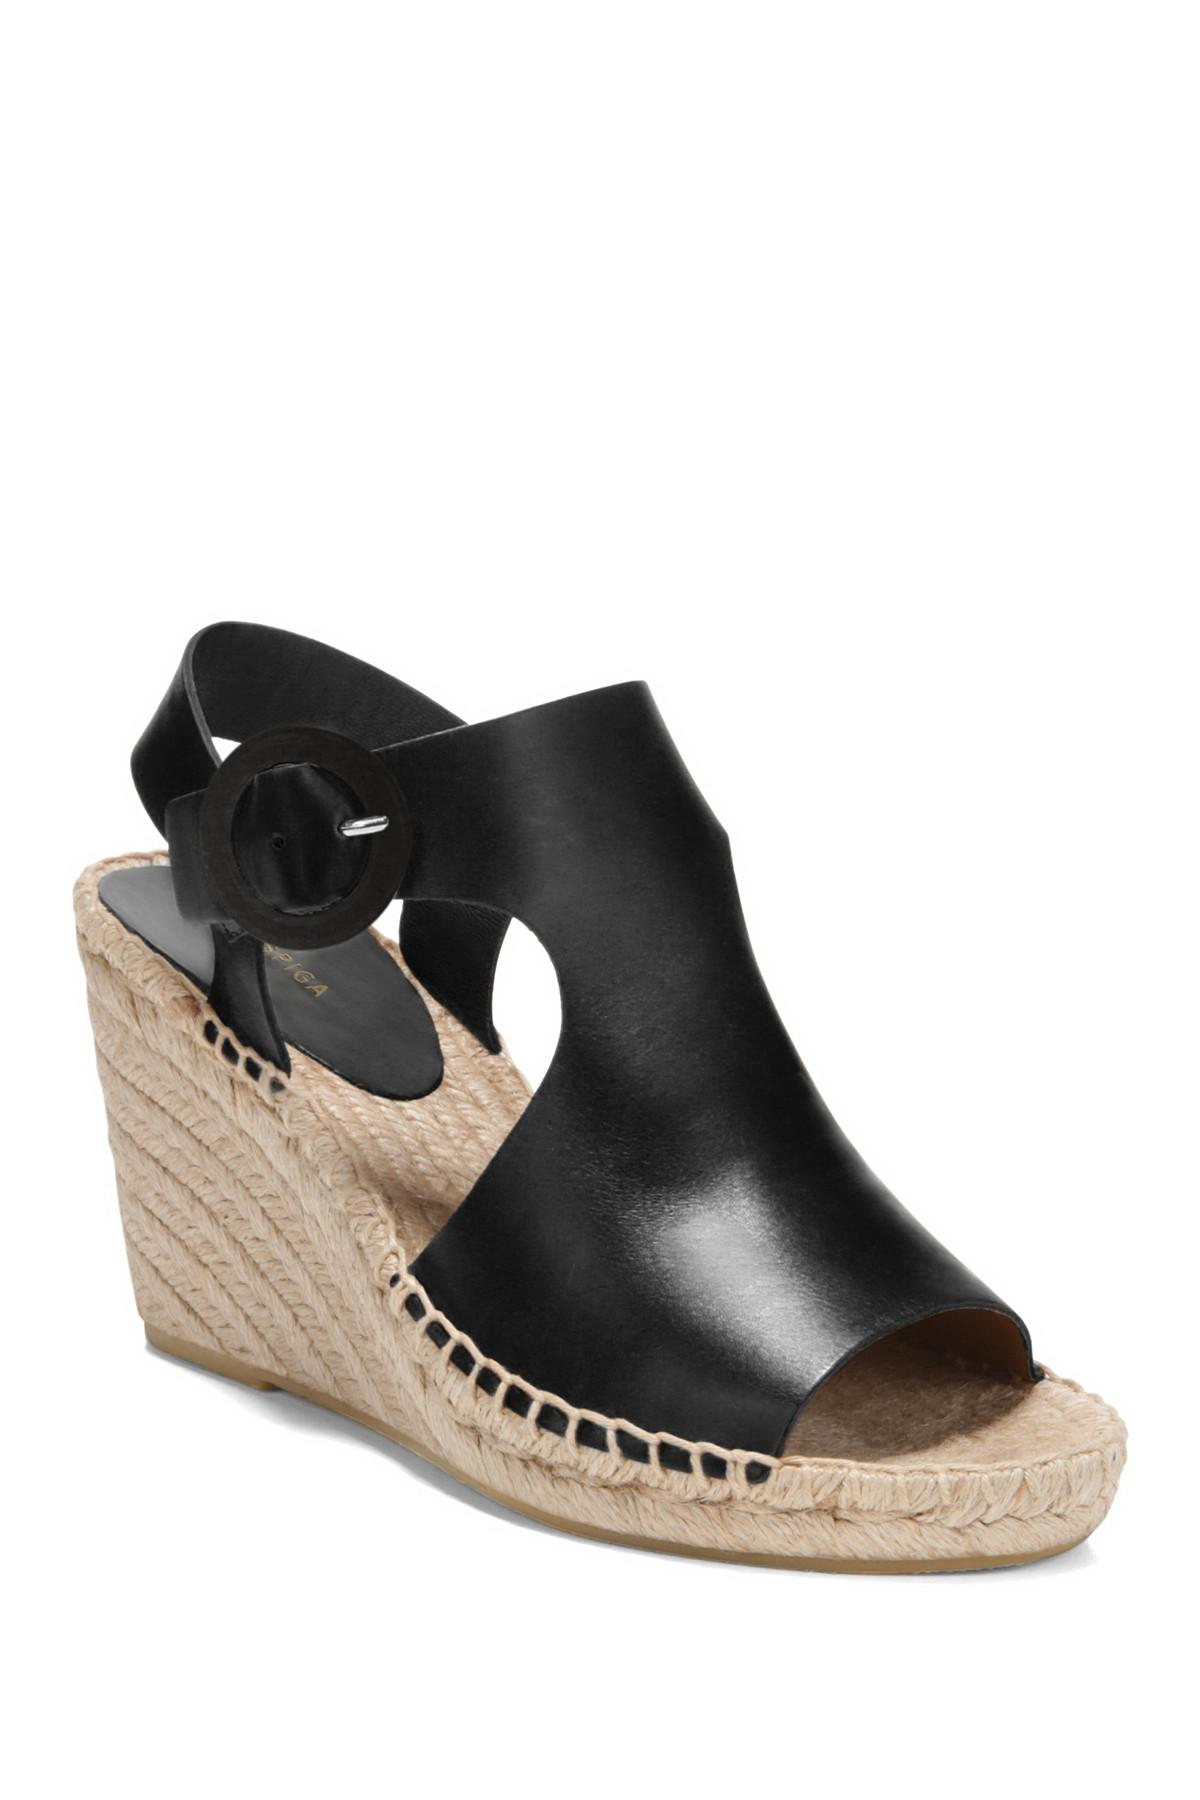 60805b7ddd05 Lyst - Via Spiga Women s Nolan Espadrille Wedge Heel Sandals in ...